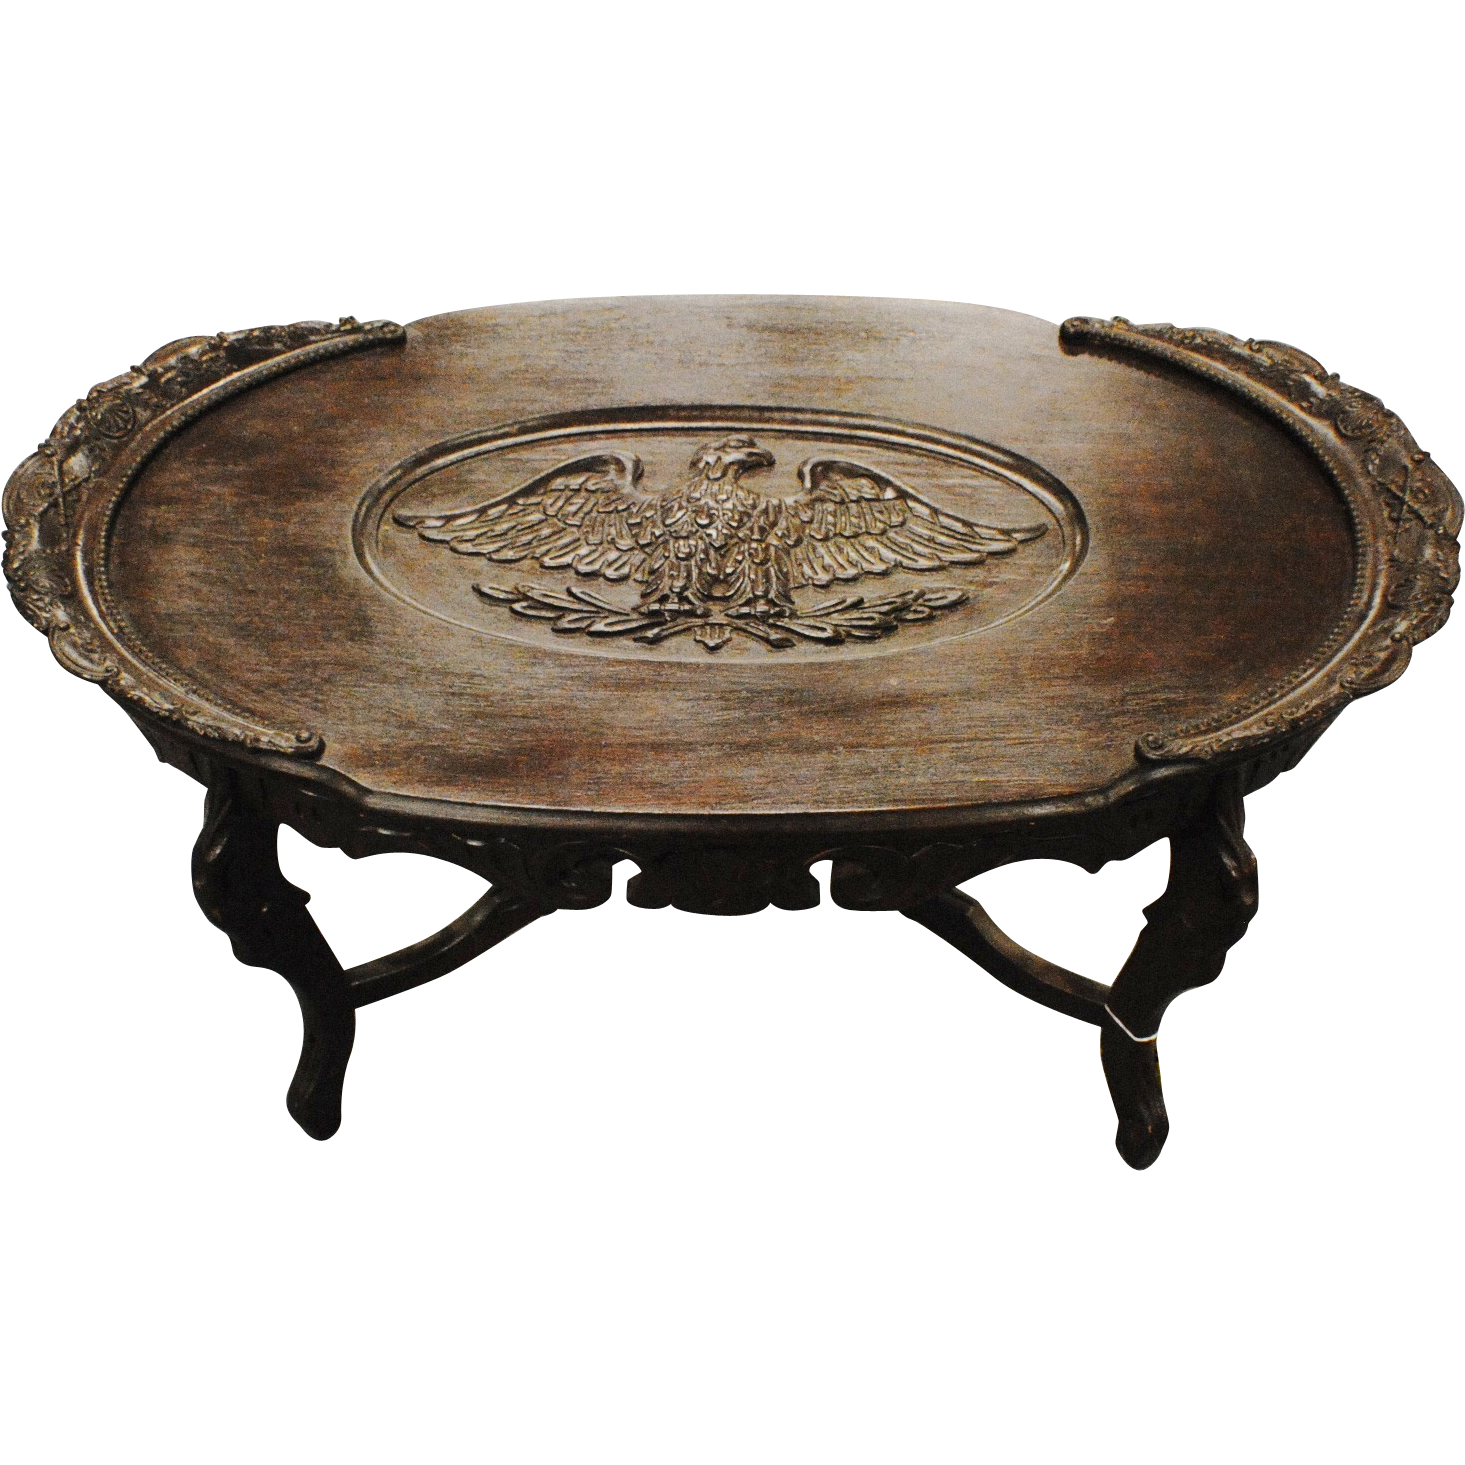 Coffee Table With Carved Eagle And Civil War Scene From